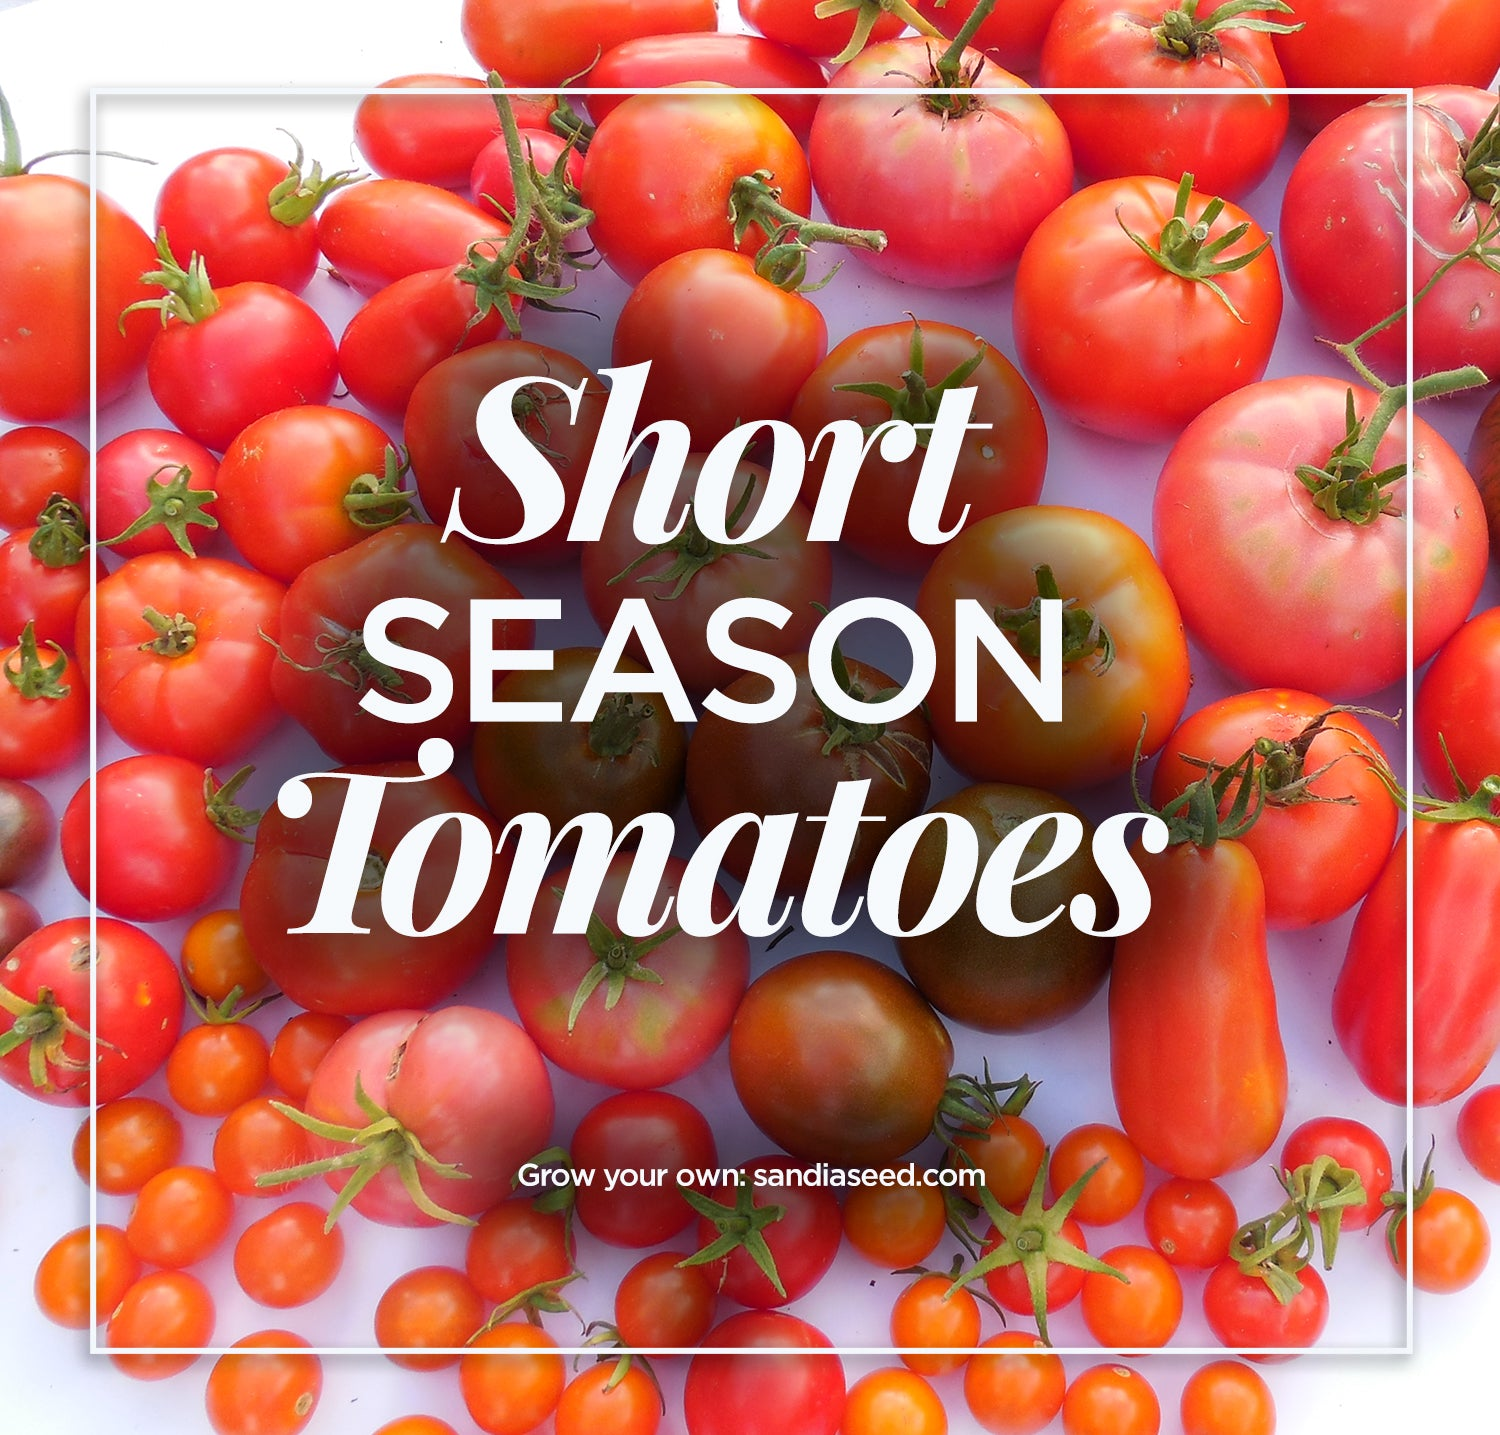 Short Season Tomatoes